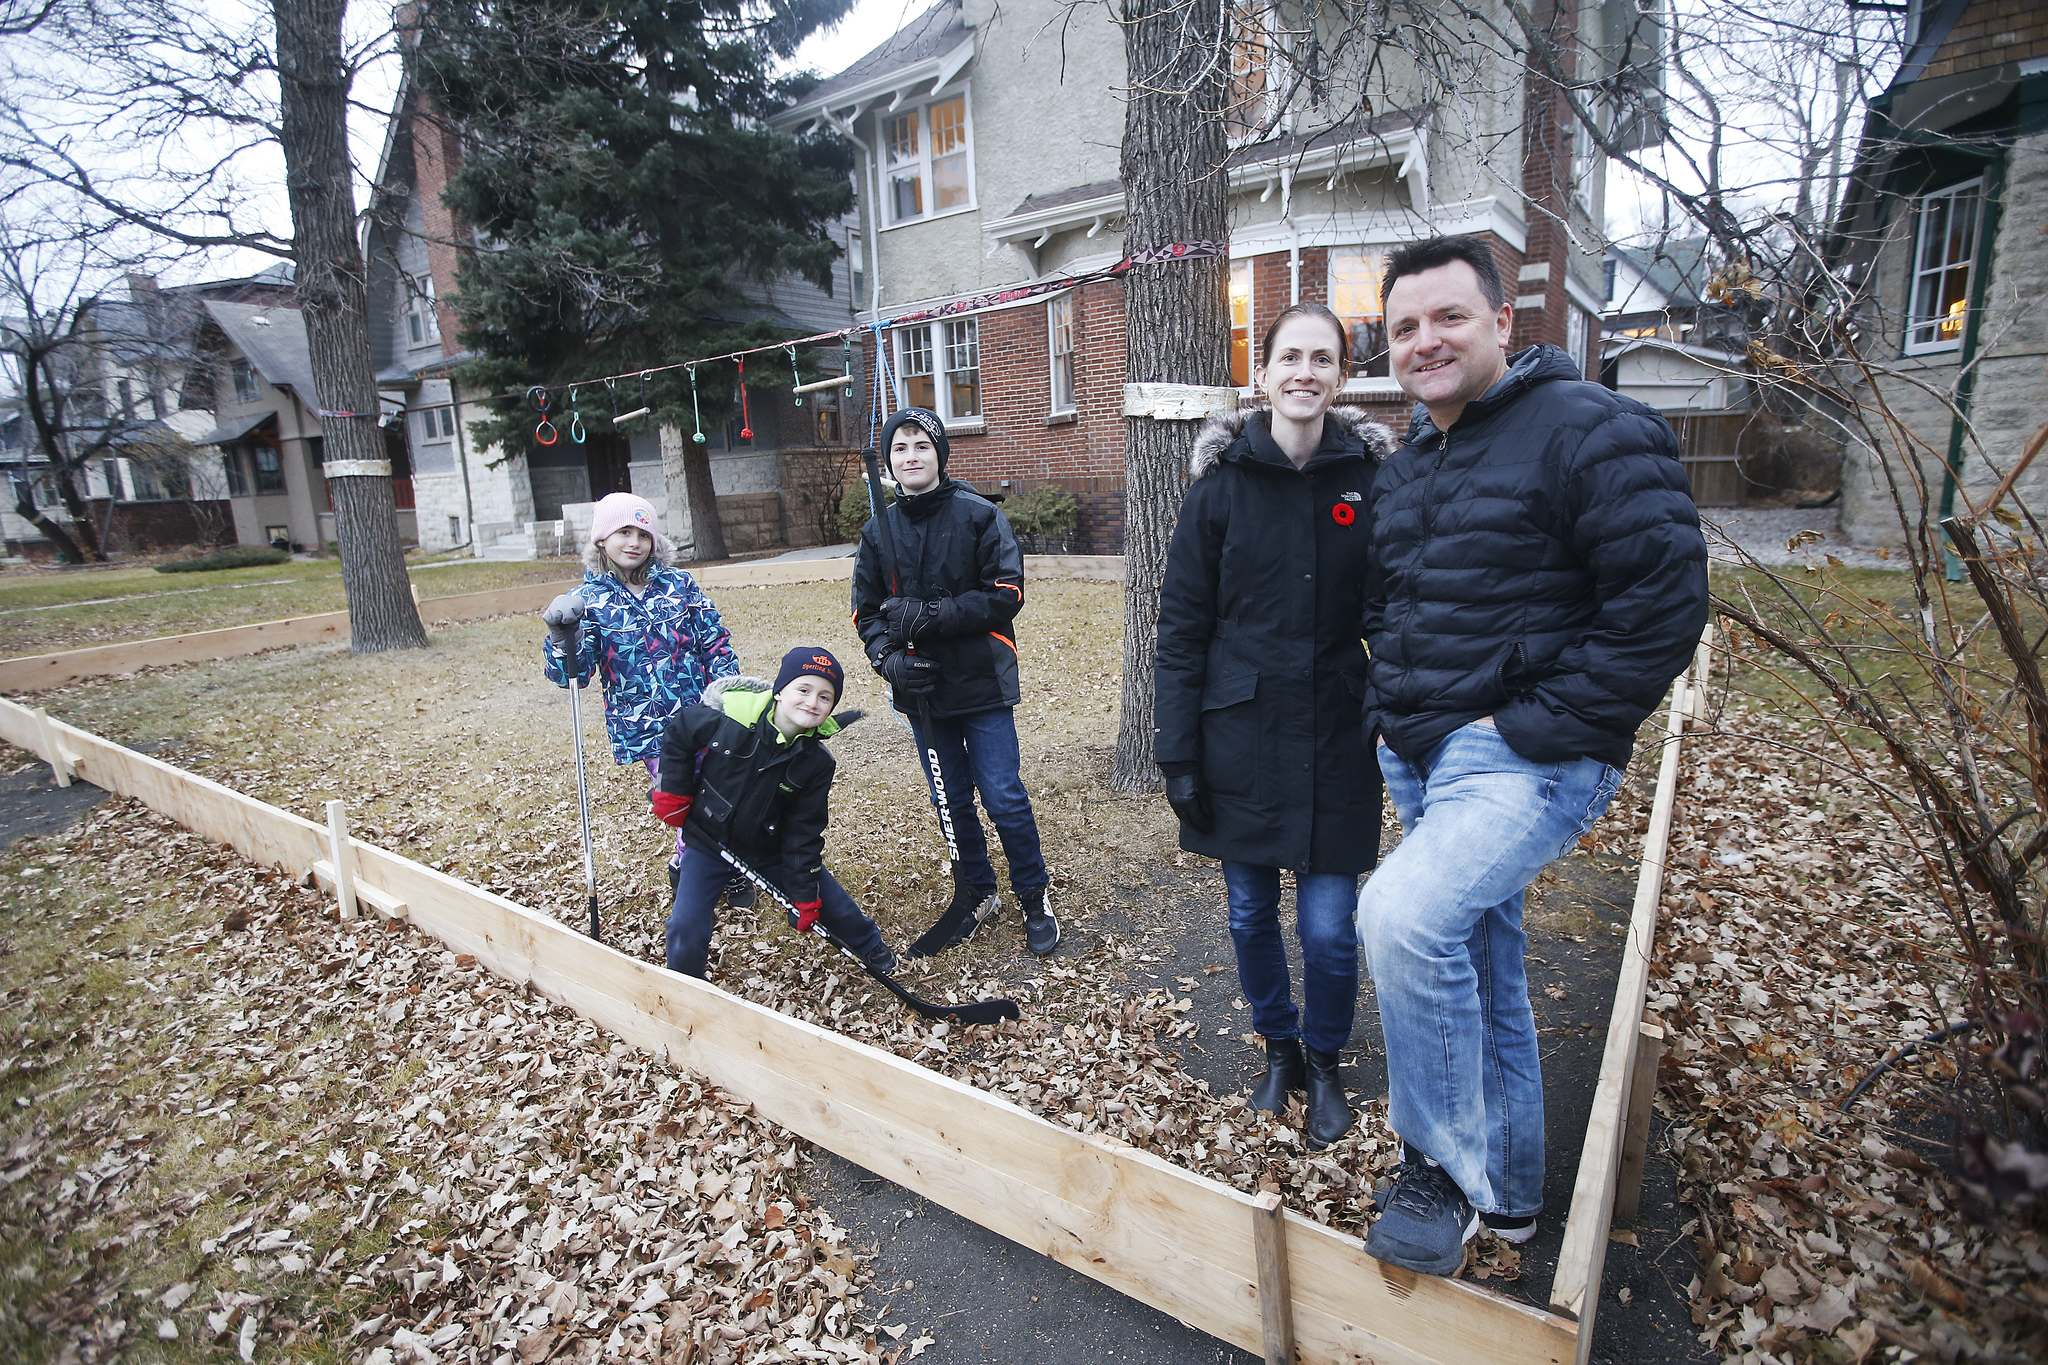 Shane and Kara McCartney are building a rink for their children (from left) Emerson, Blake and Aiden at their Crescentwood home.